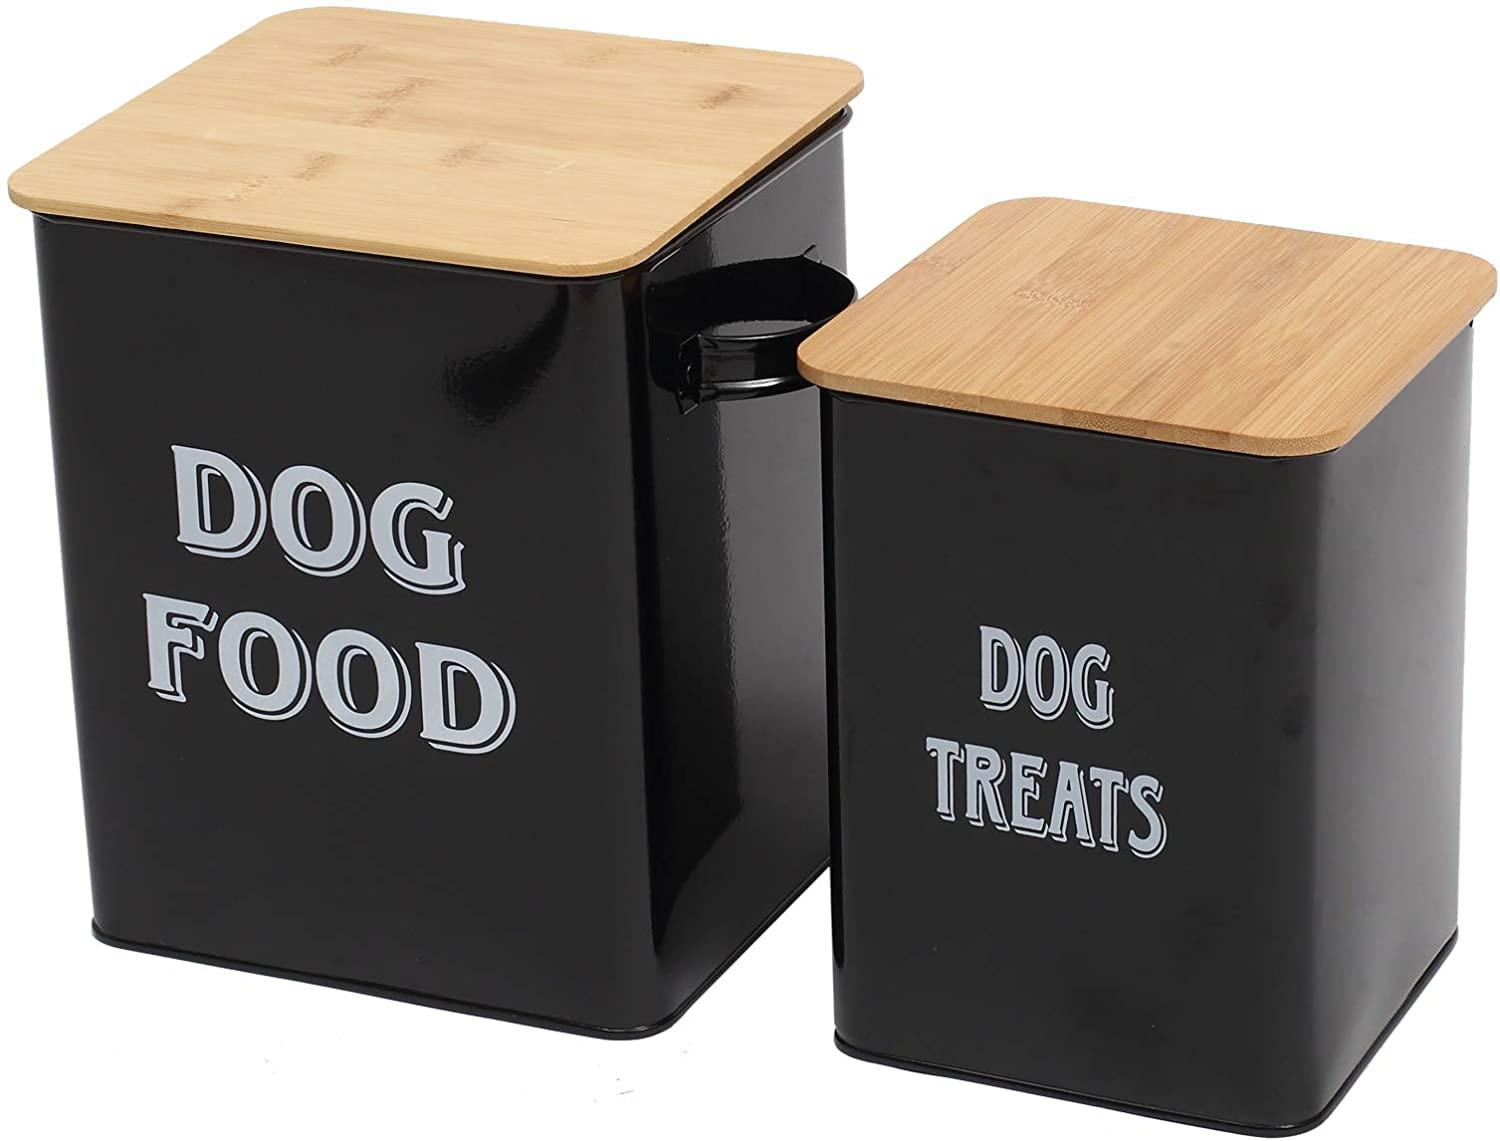 Pethiy Dog Food and Treats Storage tin Containers Set with Scoop for Dogs-Tight Fitting Wood Lids-Coated Carbon Steel-Storage Canister Tins